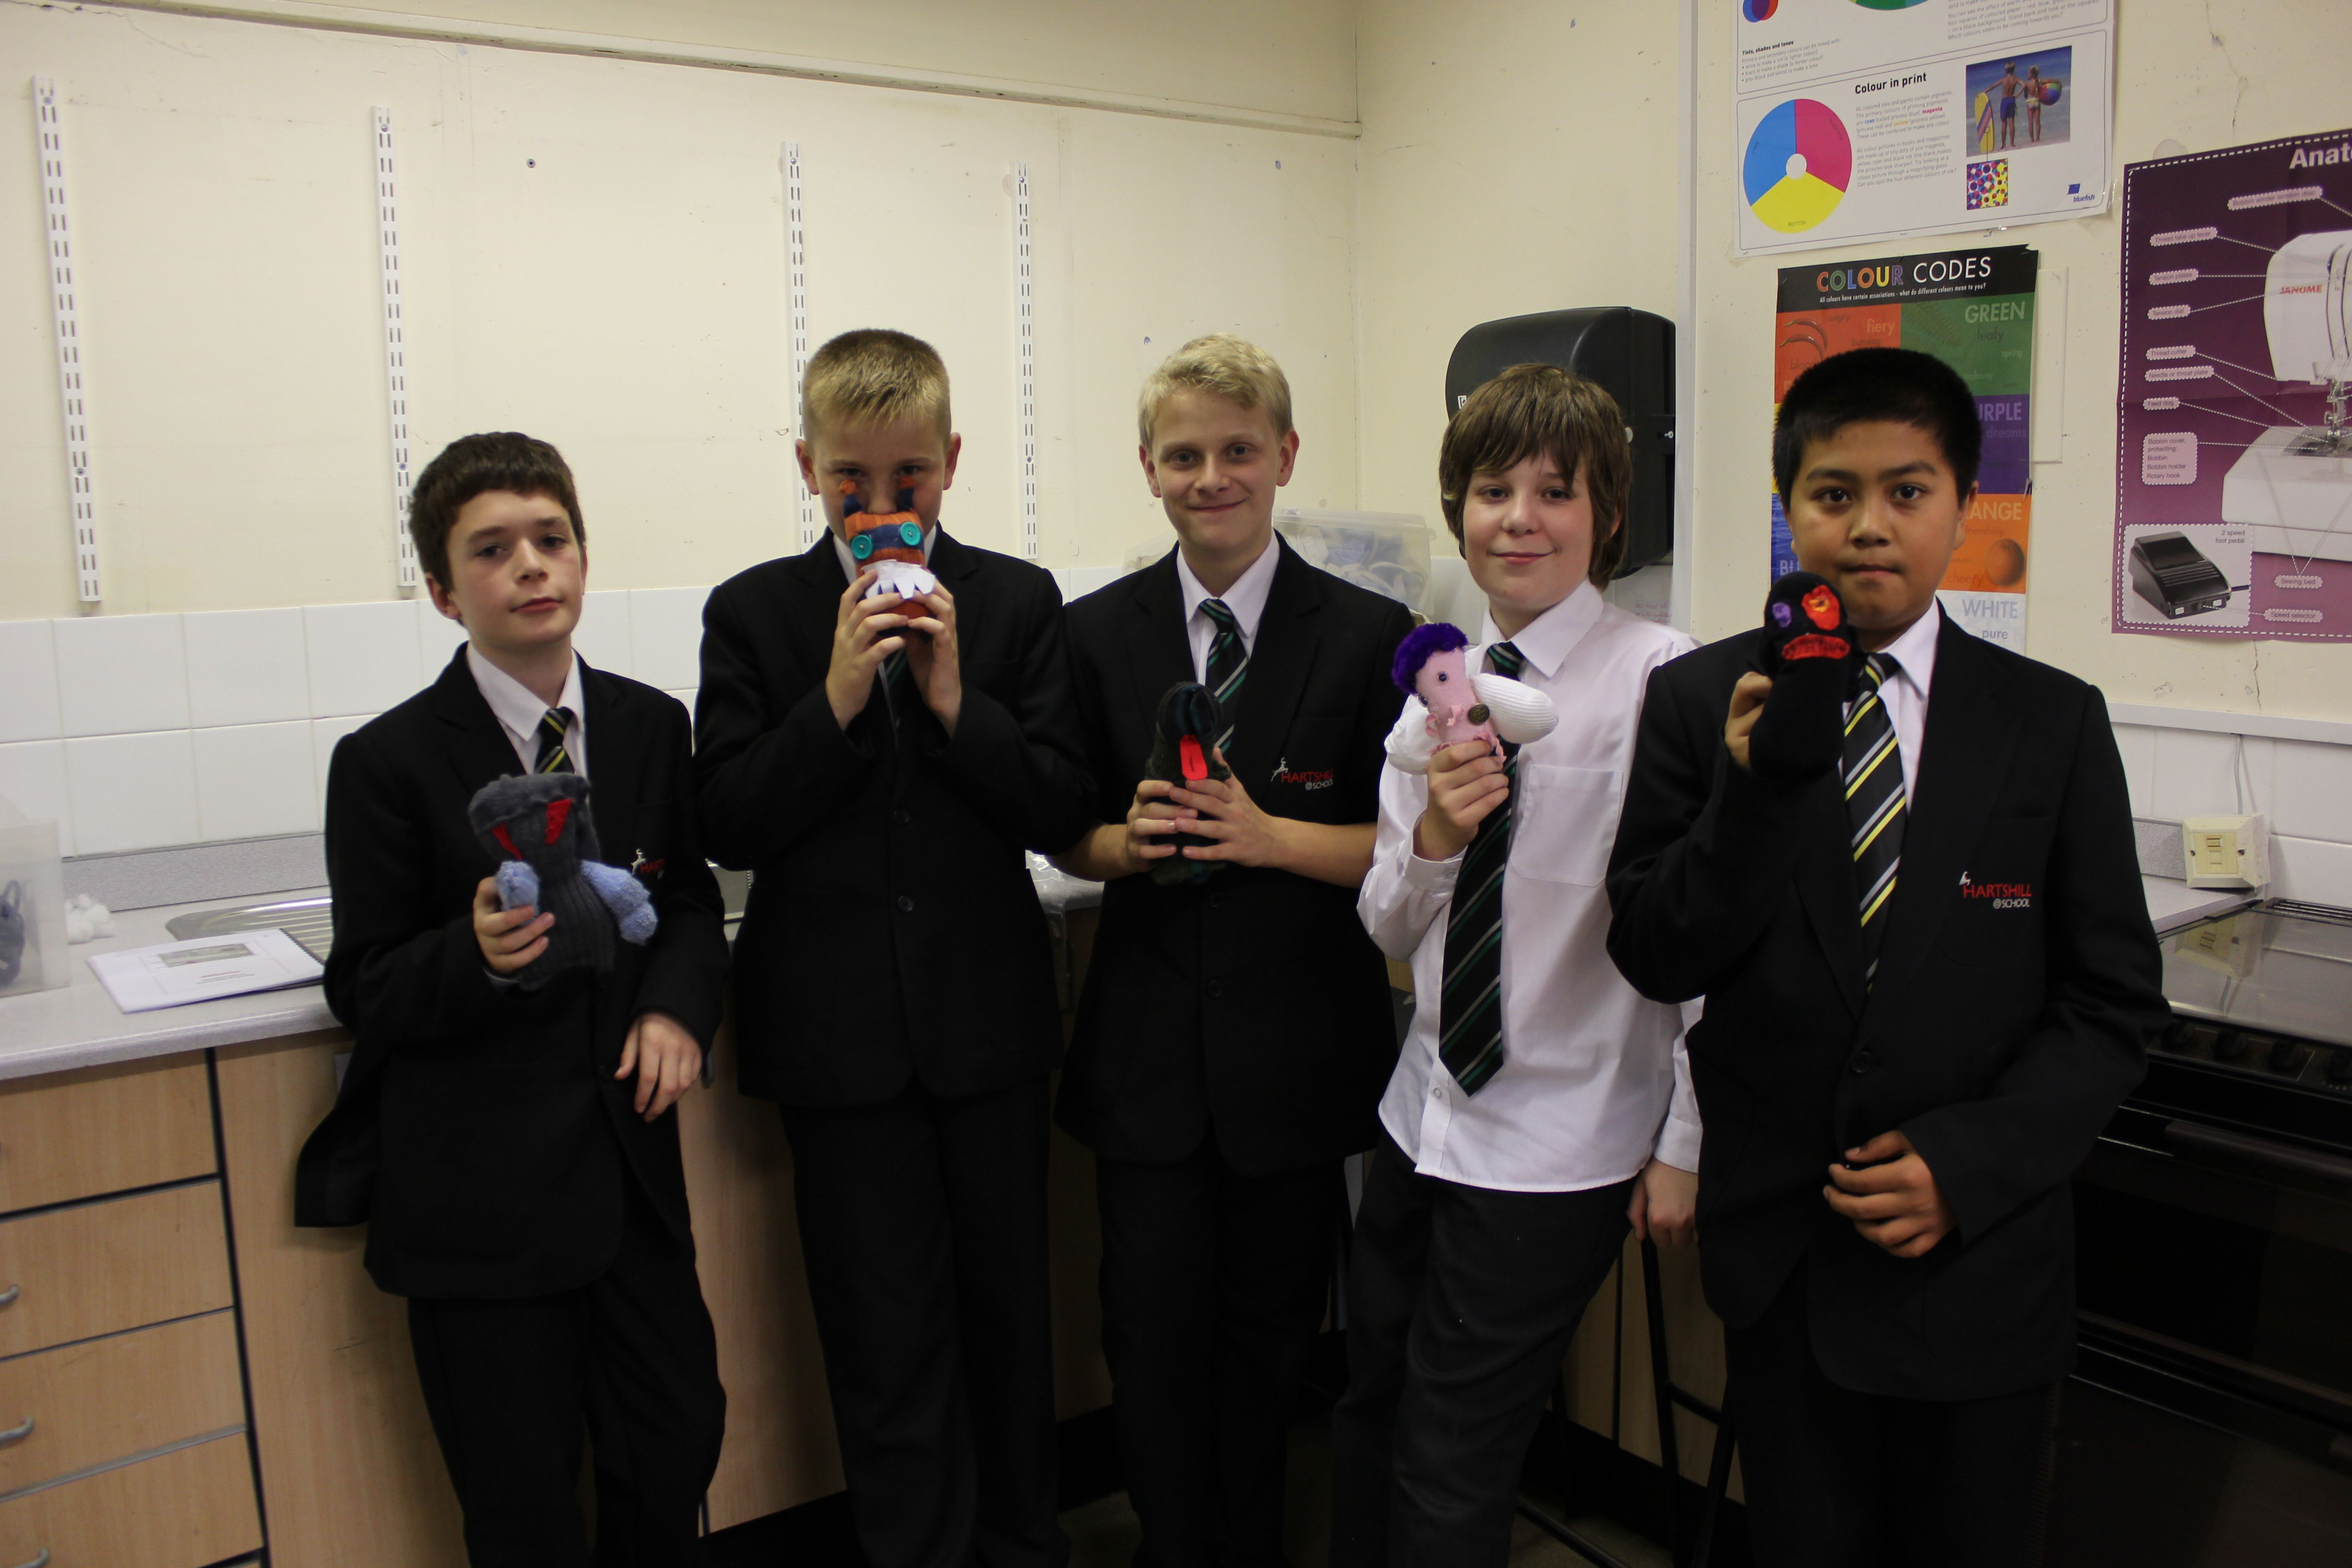 2ef7324b4 Donated socks from HJ Hall made into Sock Creations by students at  Hartshill School